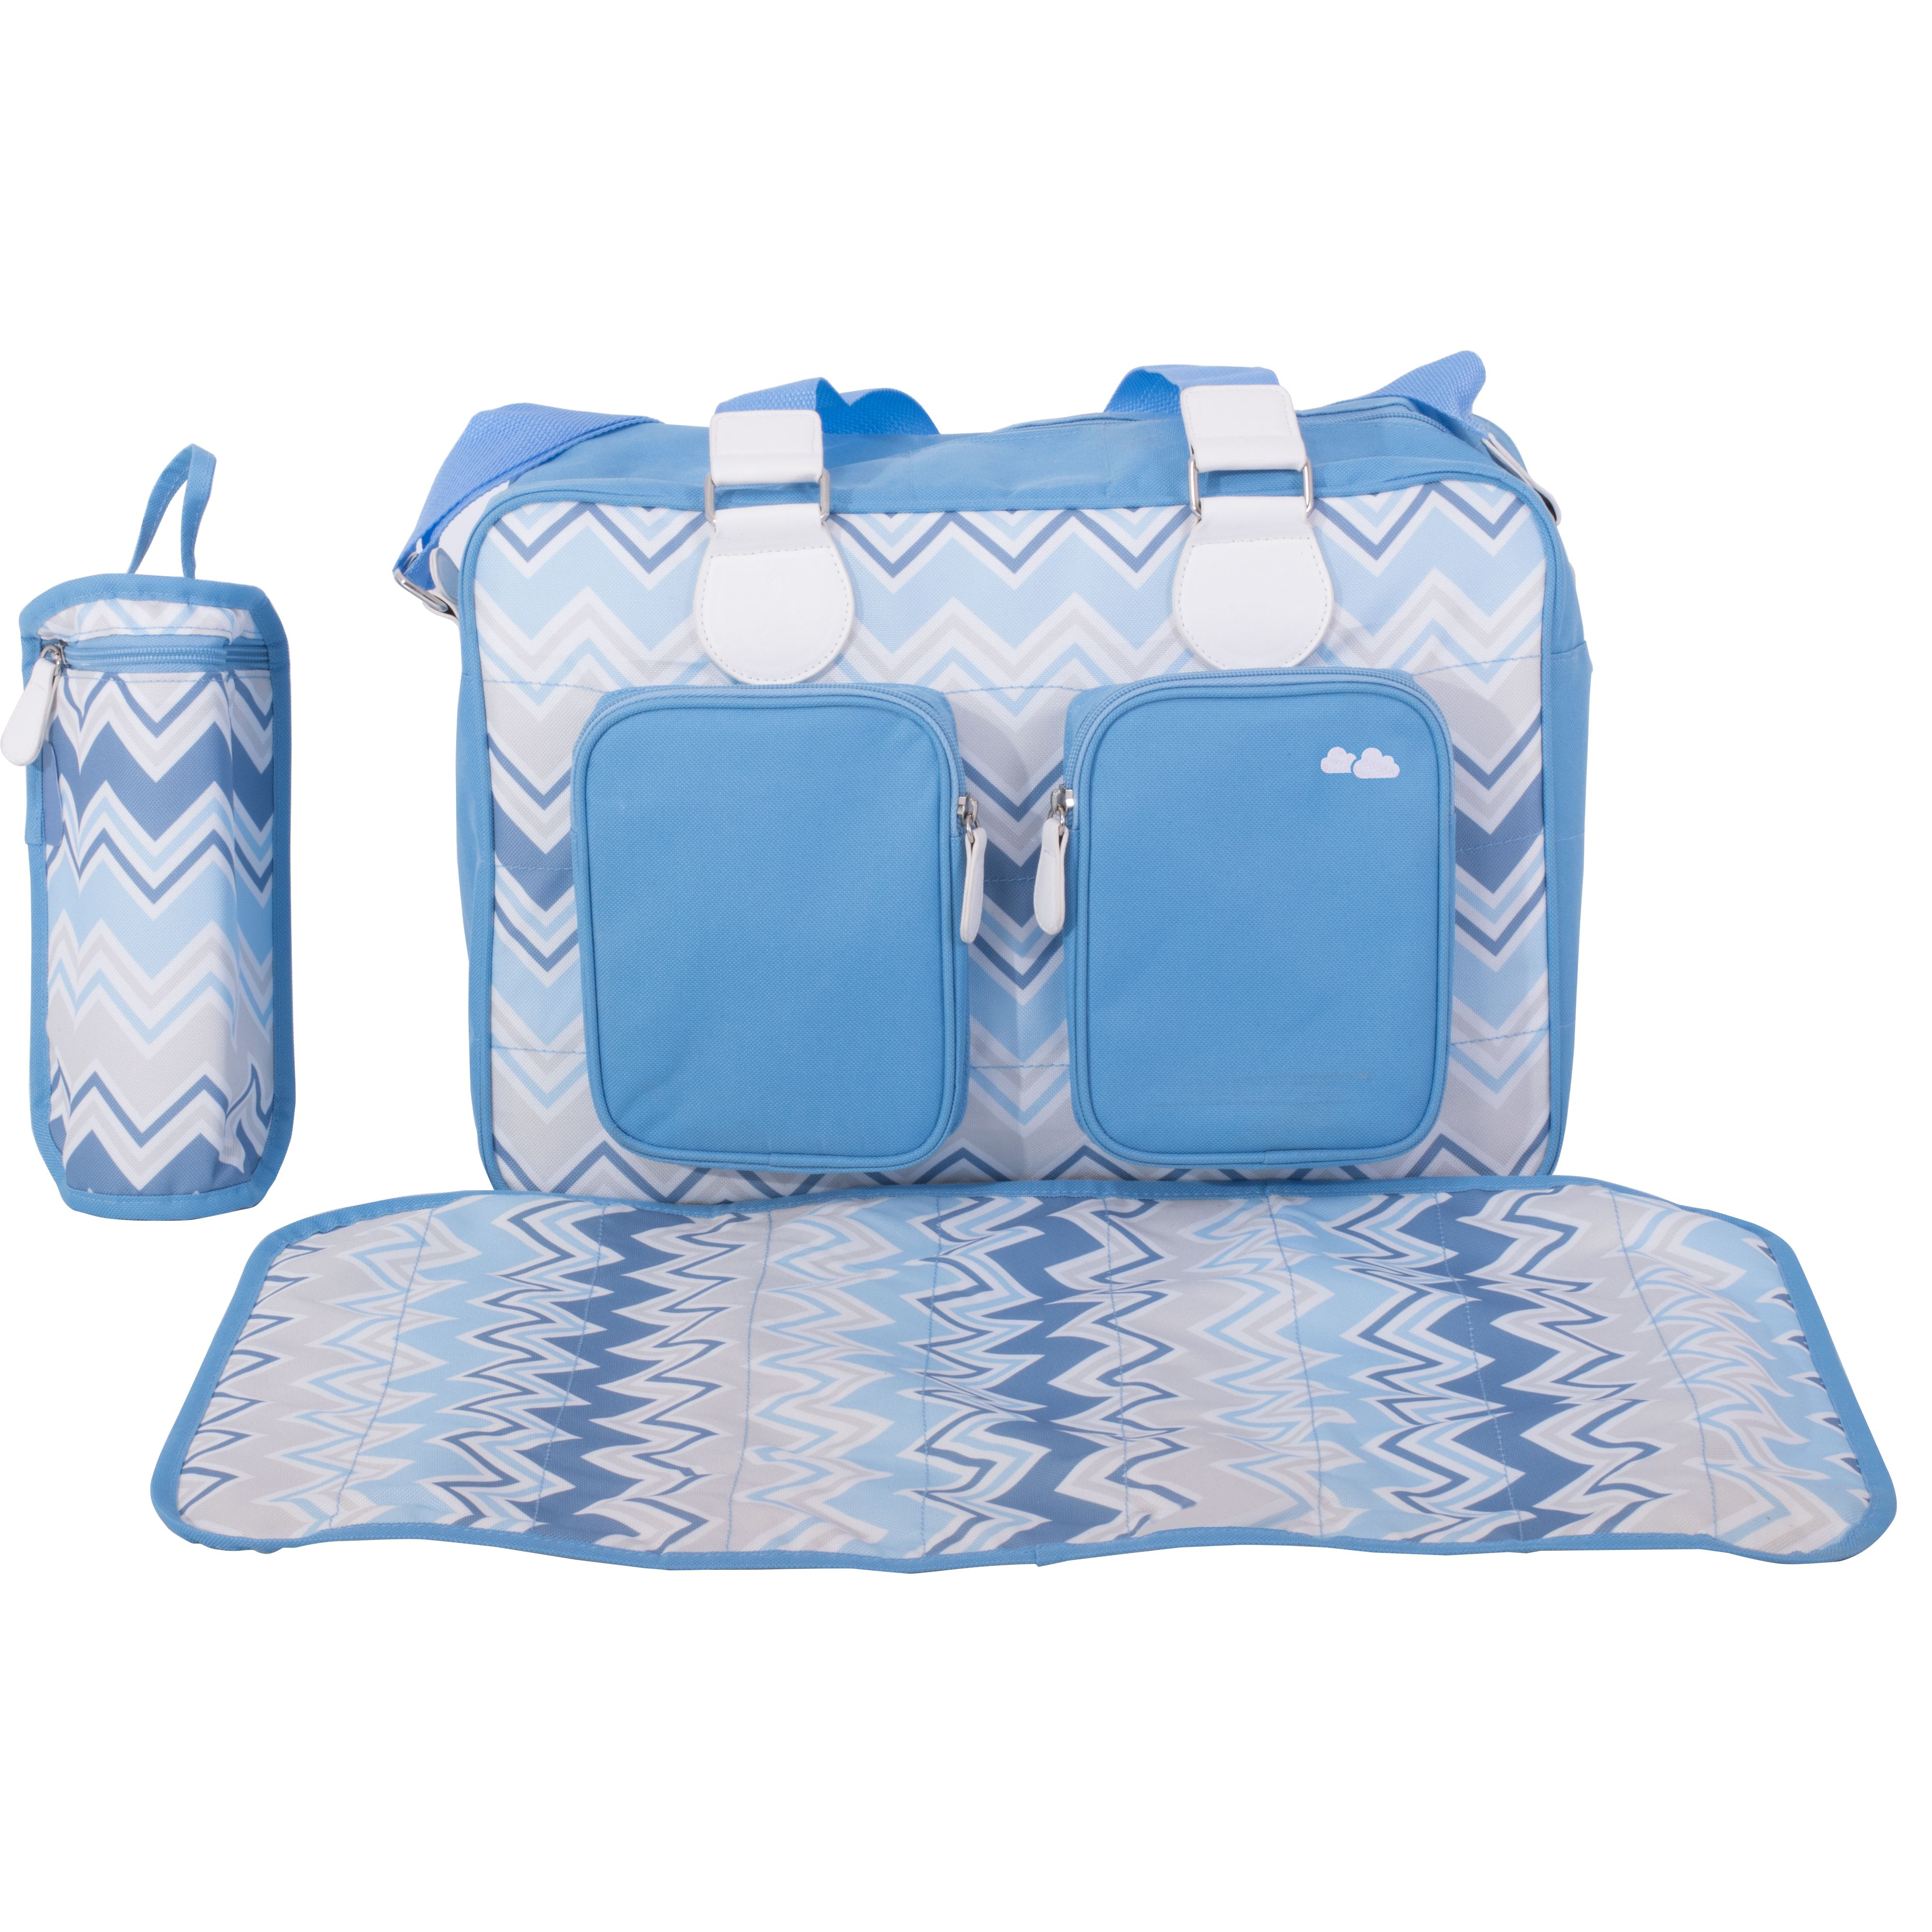 NEW MY BABIIE CREAM DELUXE BABY MATERNITY NAPPY CHANGING BAG /& CHANGE MAT